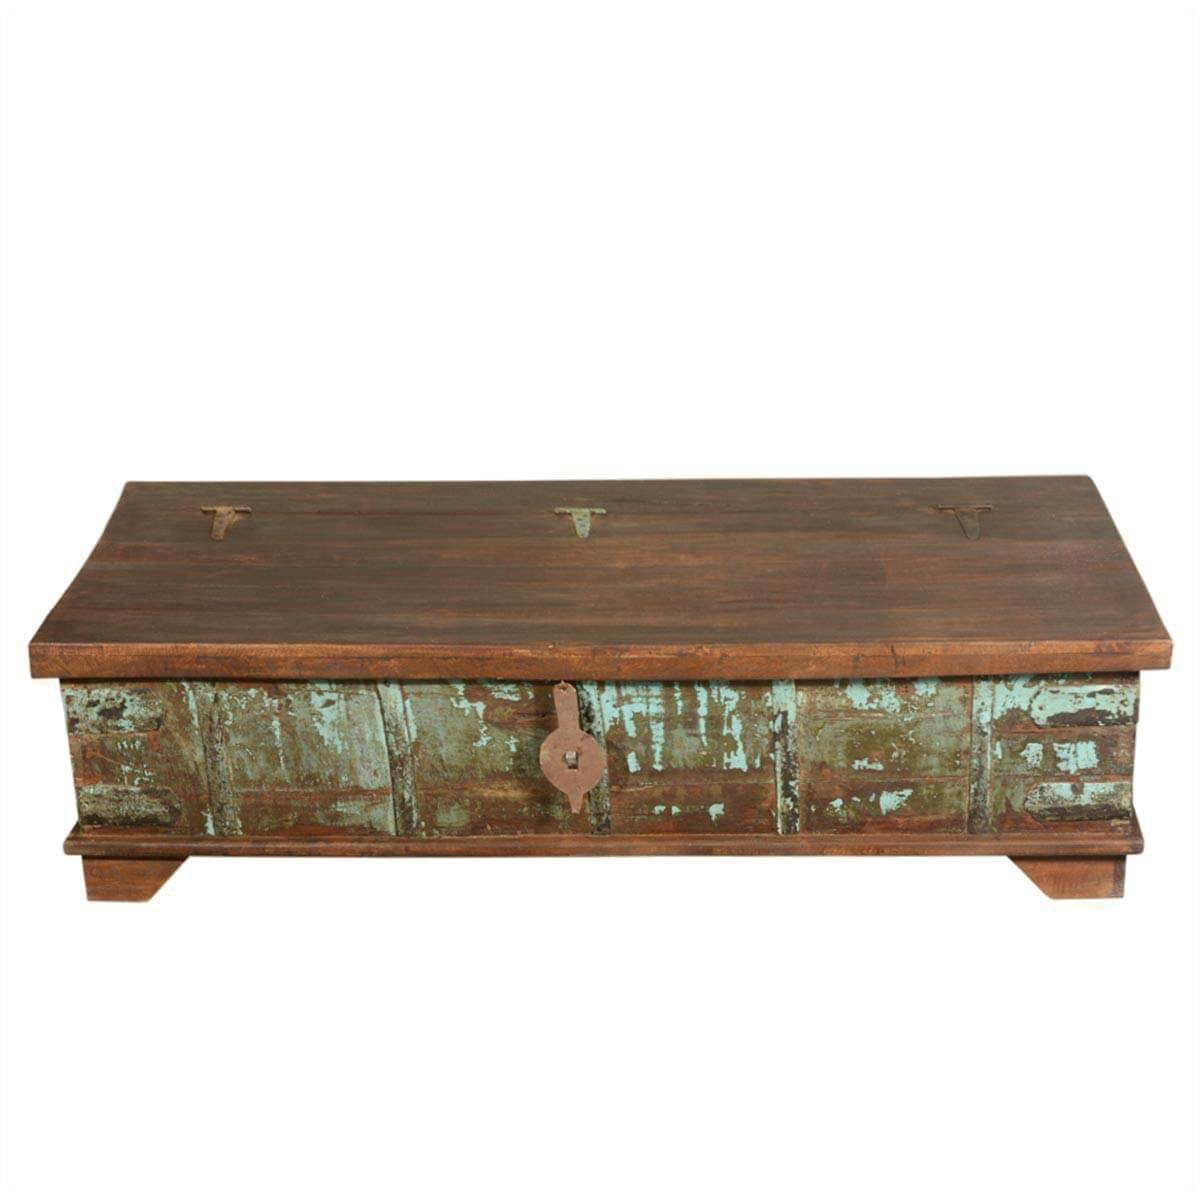 Mediterranean rustic reclaimed wood storage trunk coffee table Rustic wooden coffee tables